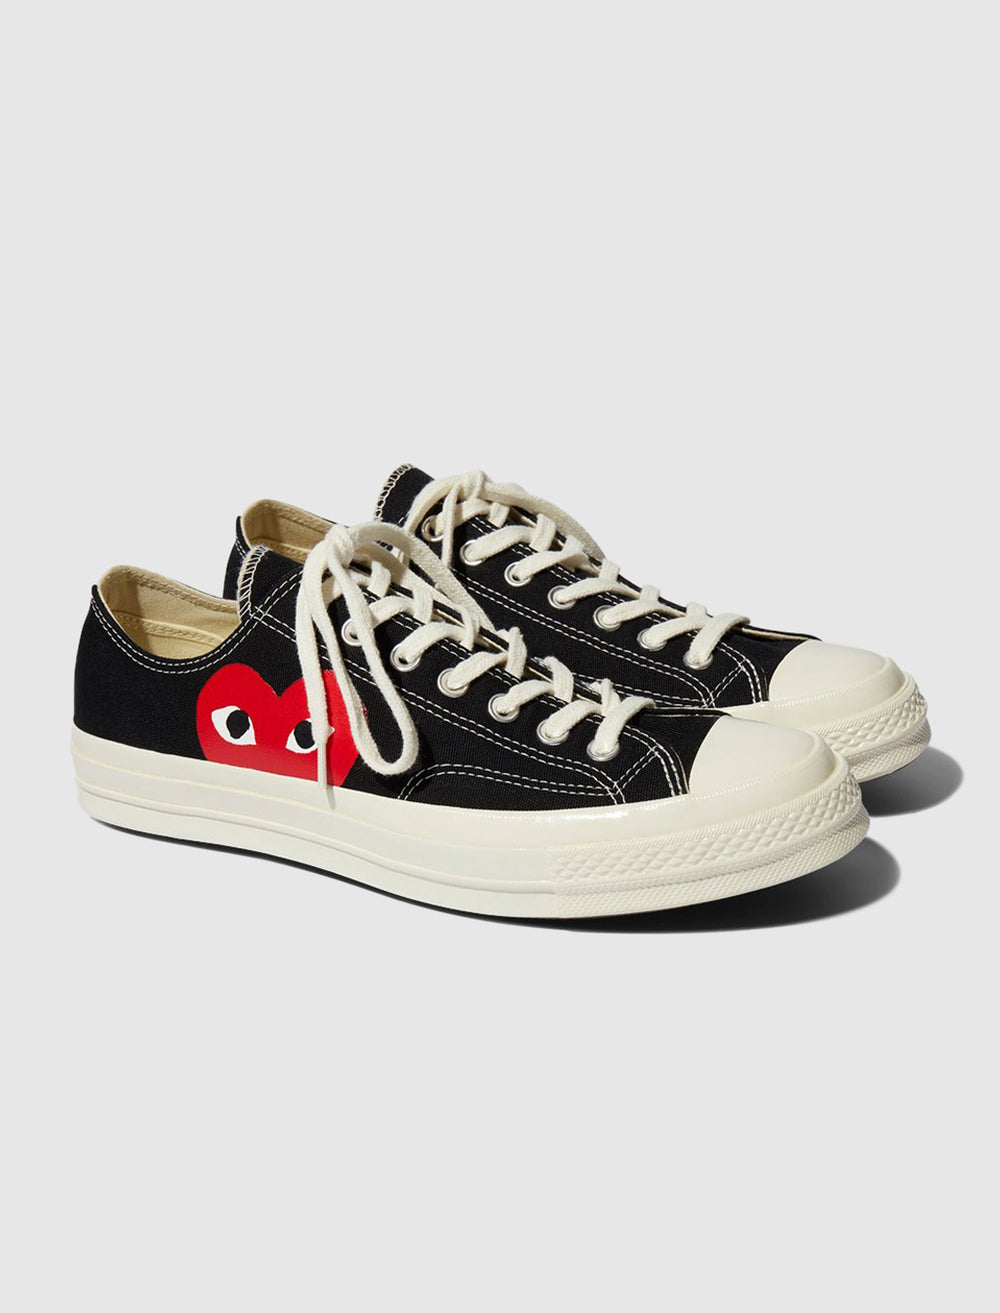 cdg-x-converse-low-2